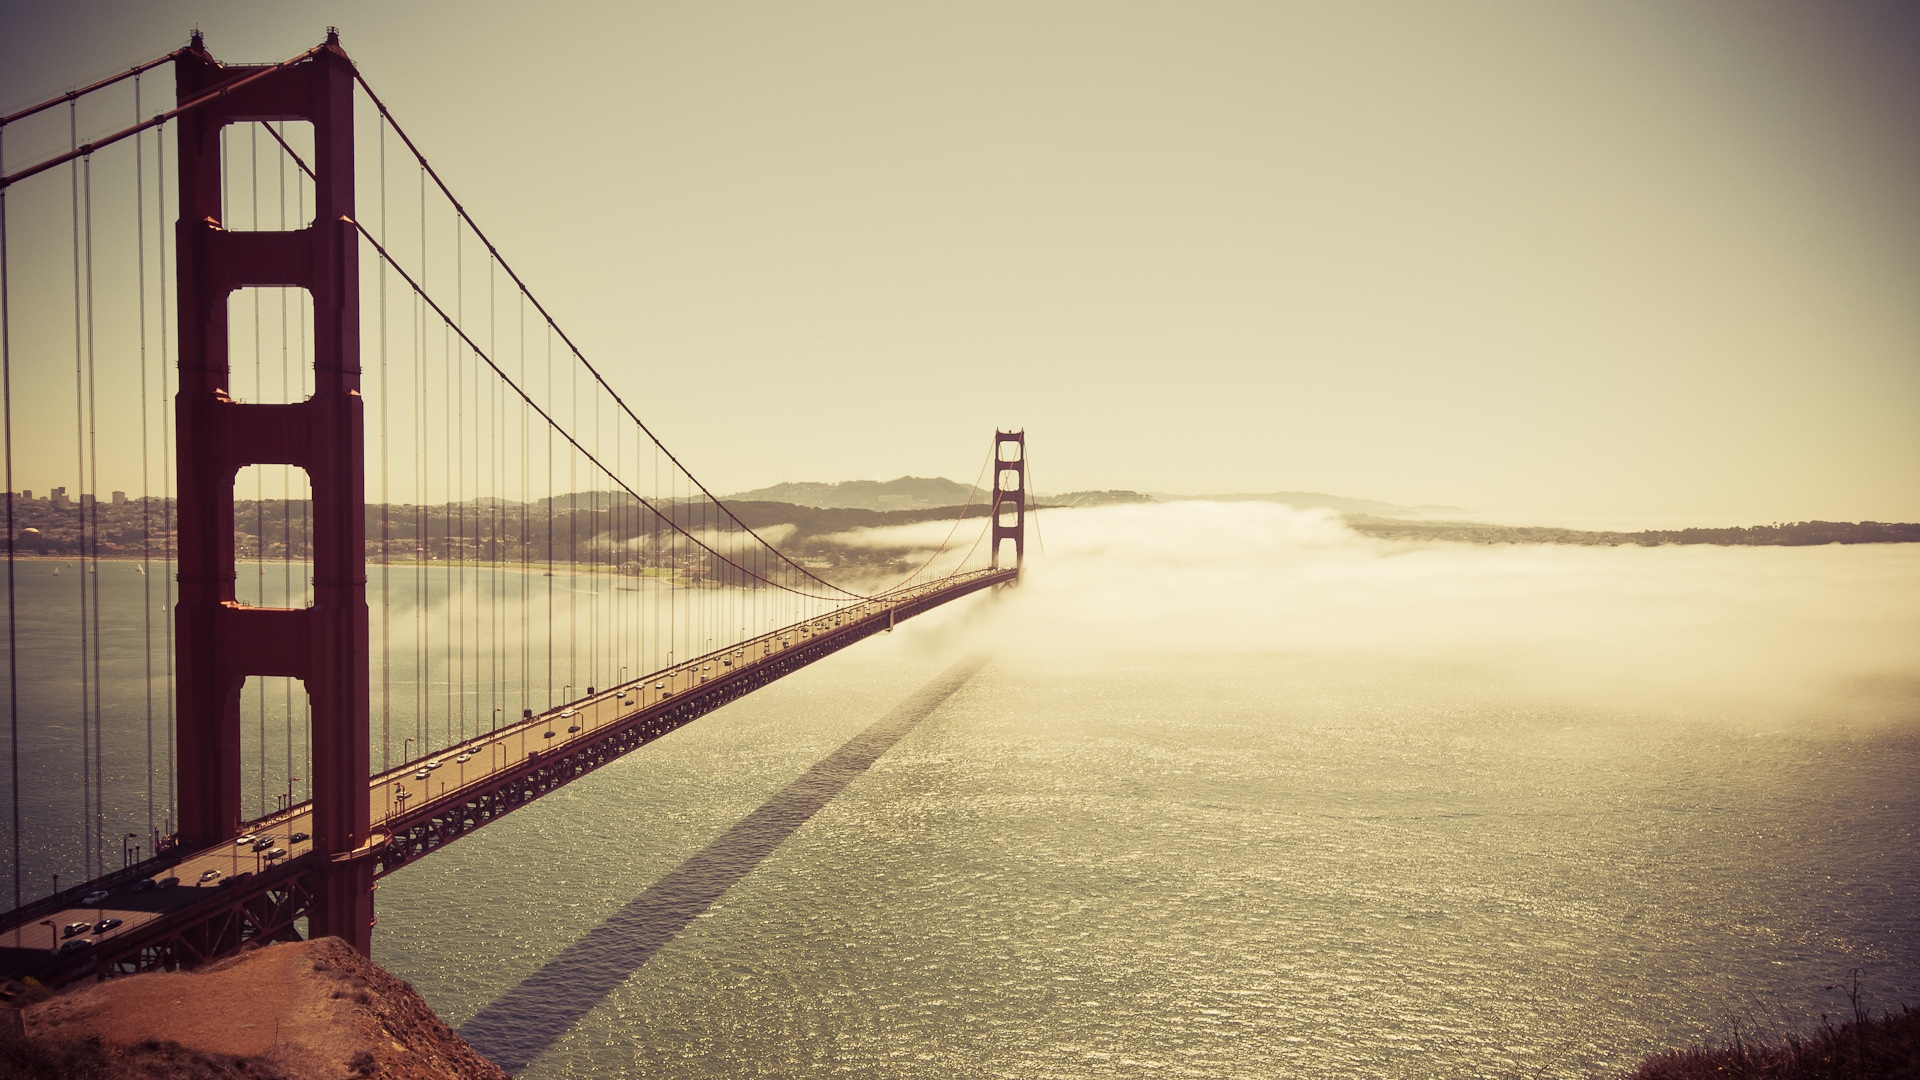 1920x1080 San francisco Bridge Sea Ocean Sky Wallpaper Background 1920x1080